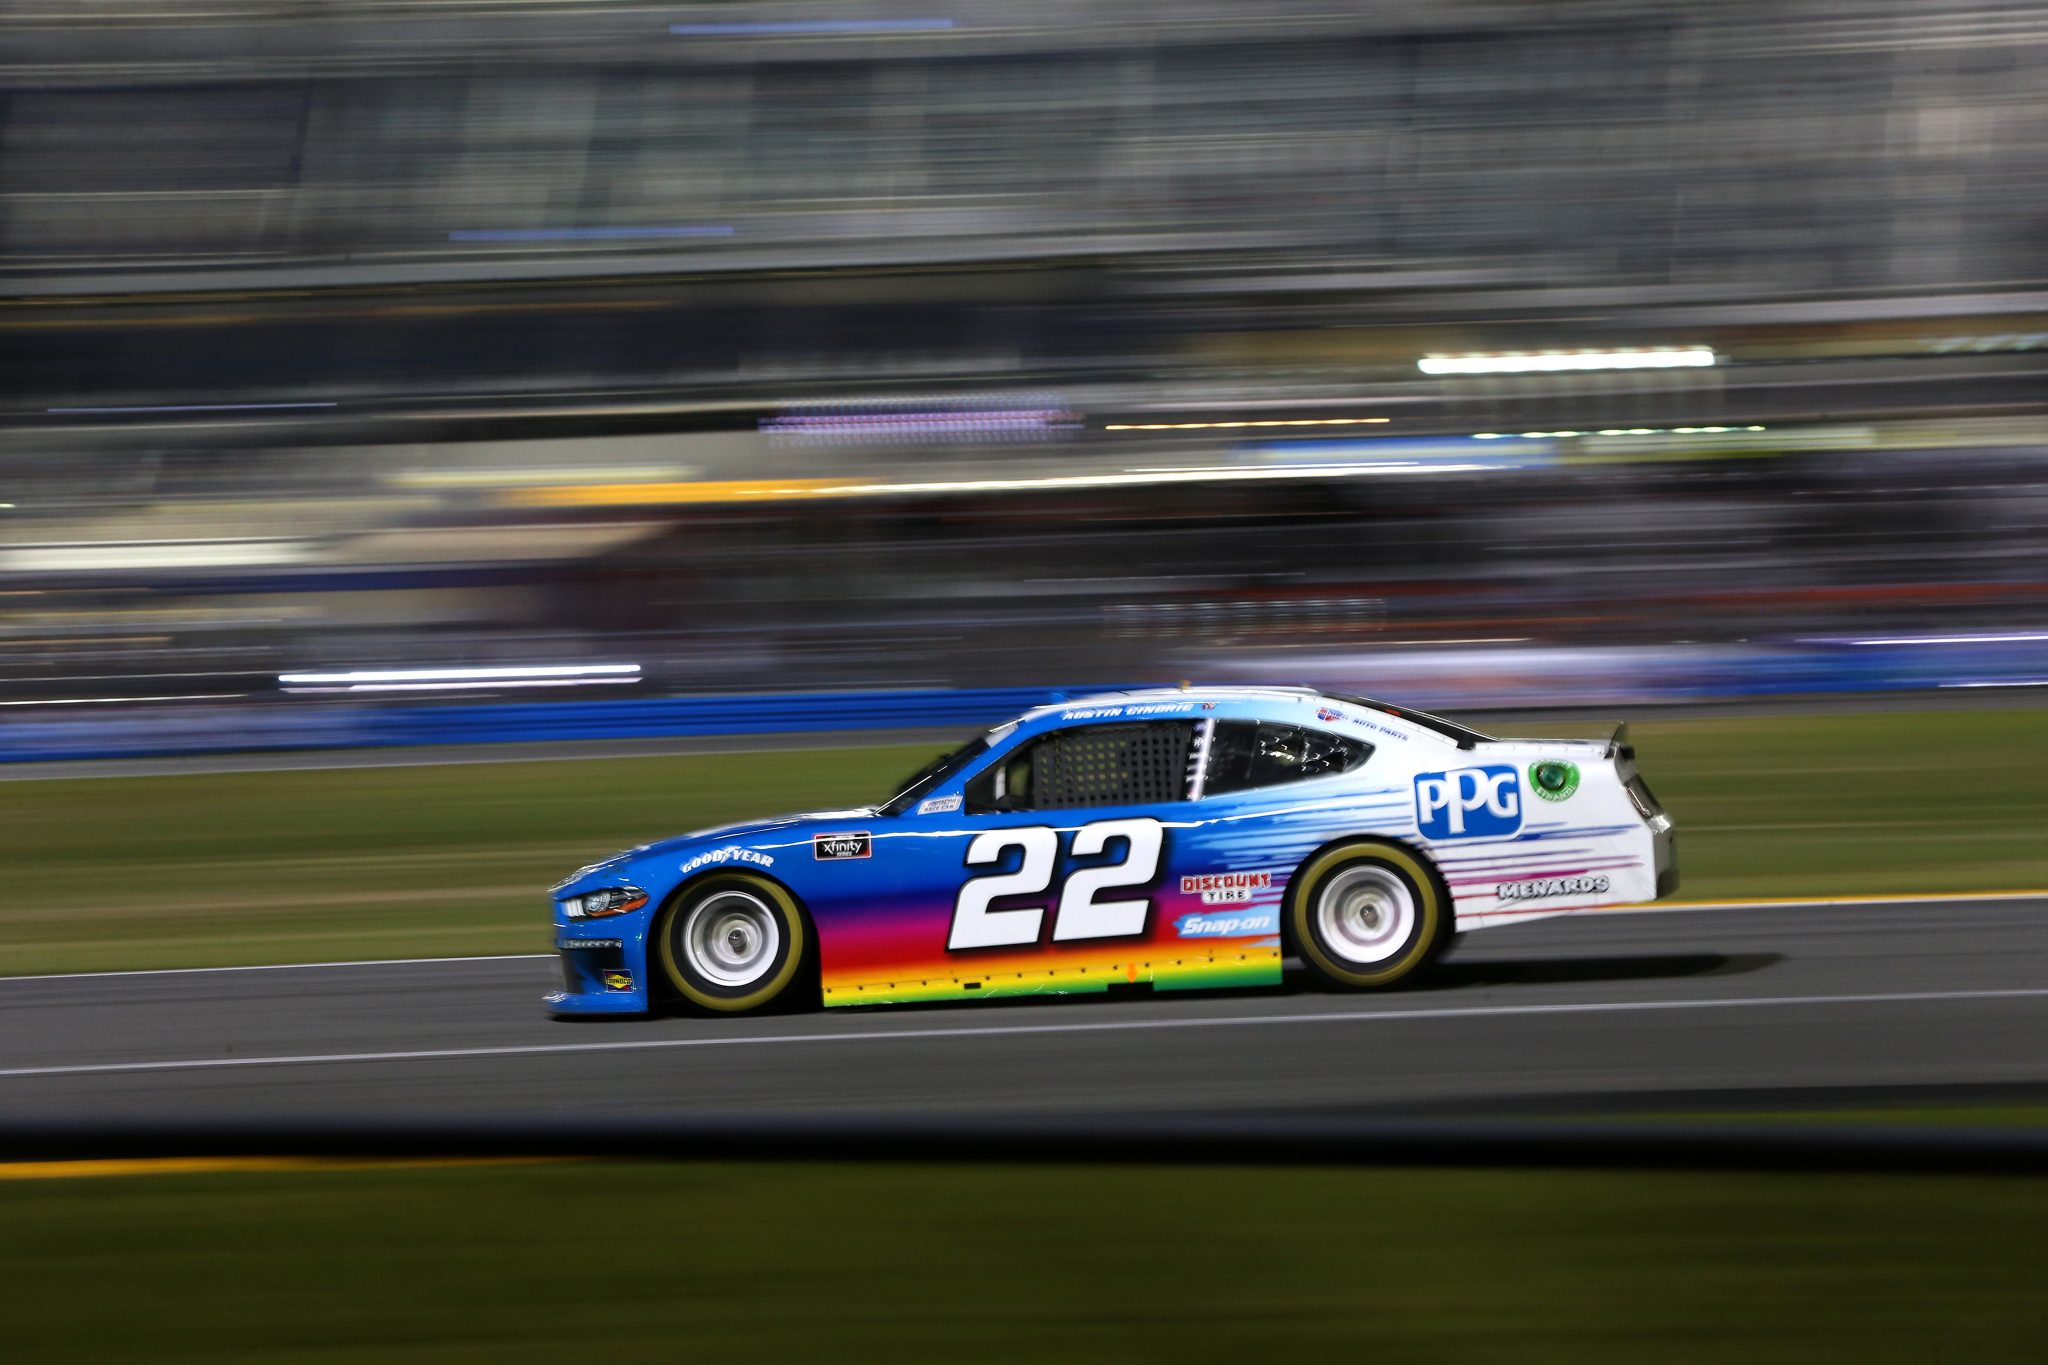 DAYTONA BEACH, FLORIDA - FEBRUARY 20: Austin Cindric, driver of the #22 PPG Ford, drives during the NASCAR Xfinity Super Start Batteries 188 At Daytona Presented by O'Reilly at Daytona International Speedway on February 20, 2021 in Daytona Beach, Florida. (Photo by Brian Lawdermilk/Getty Images) | Getty Images